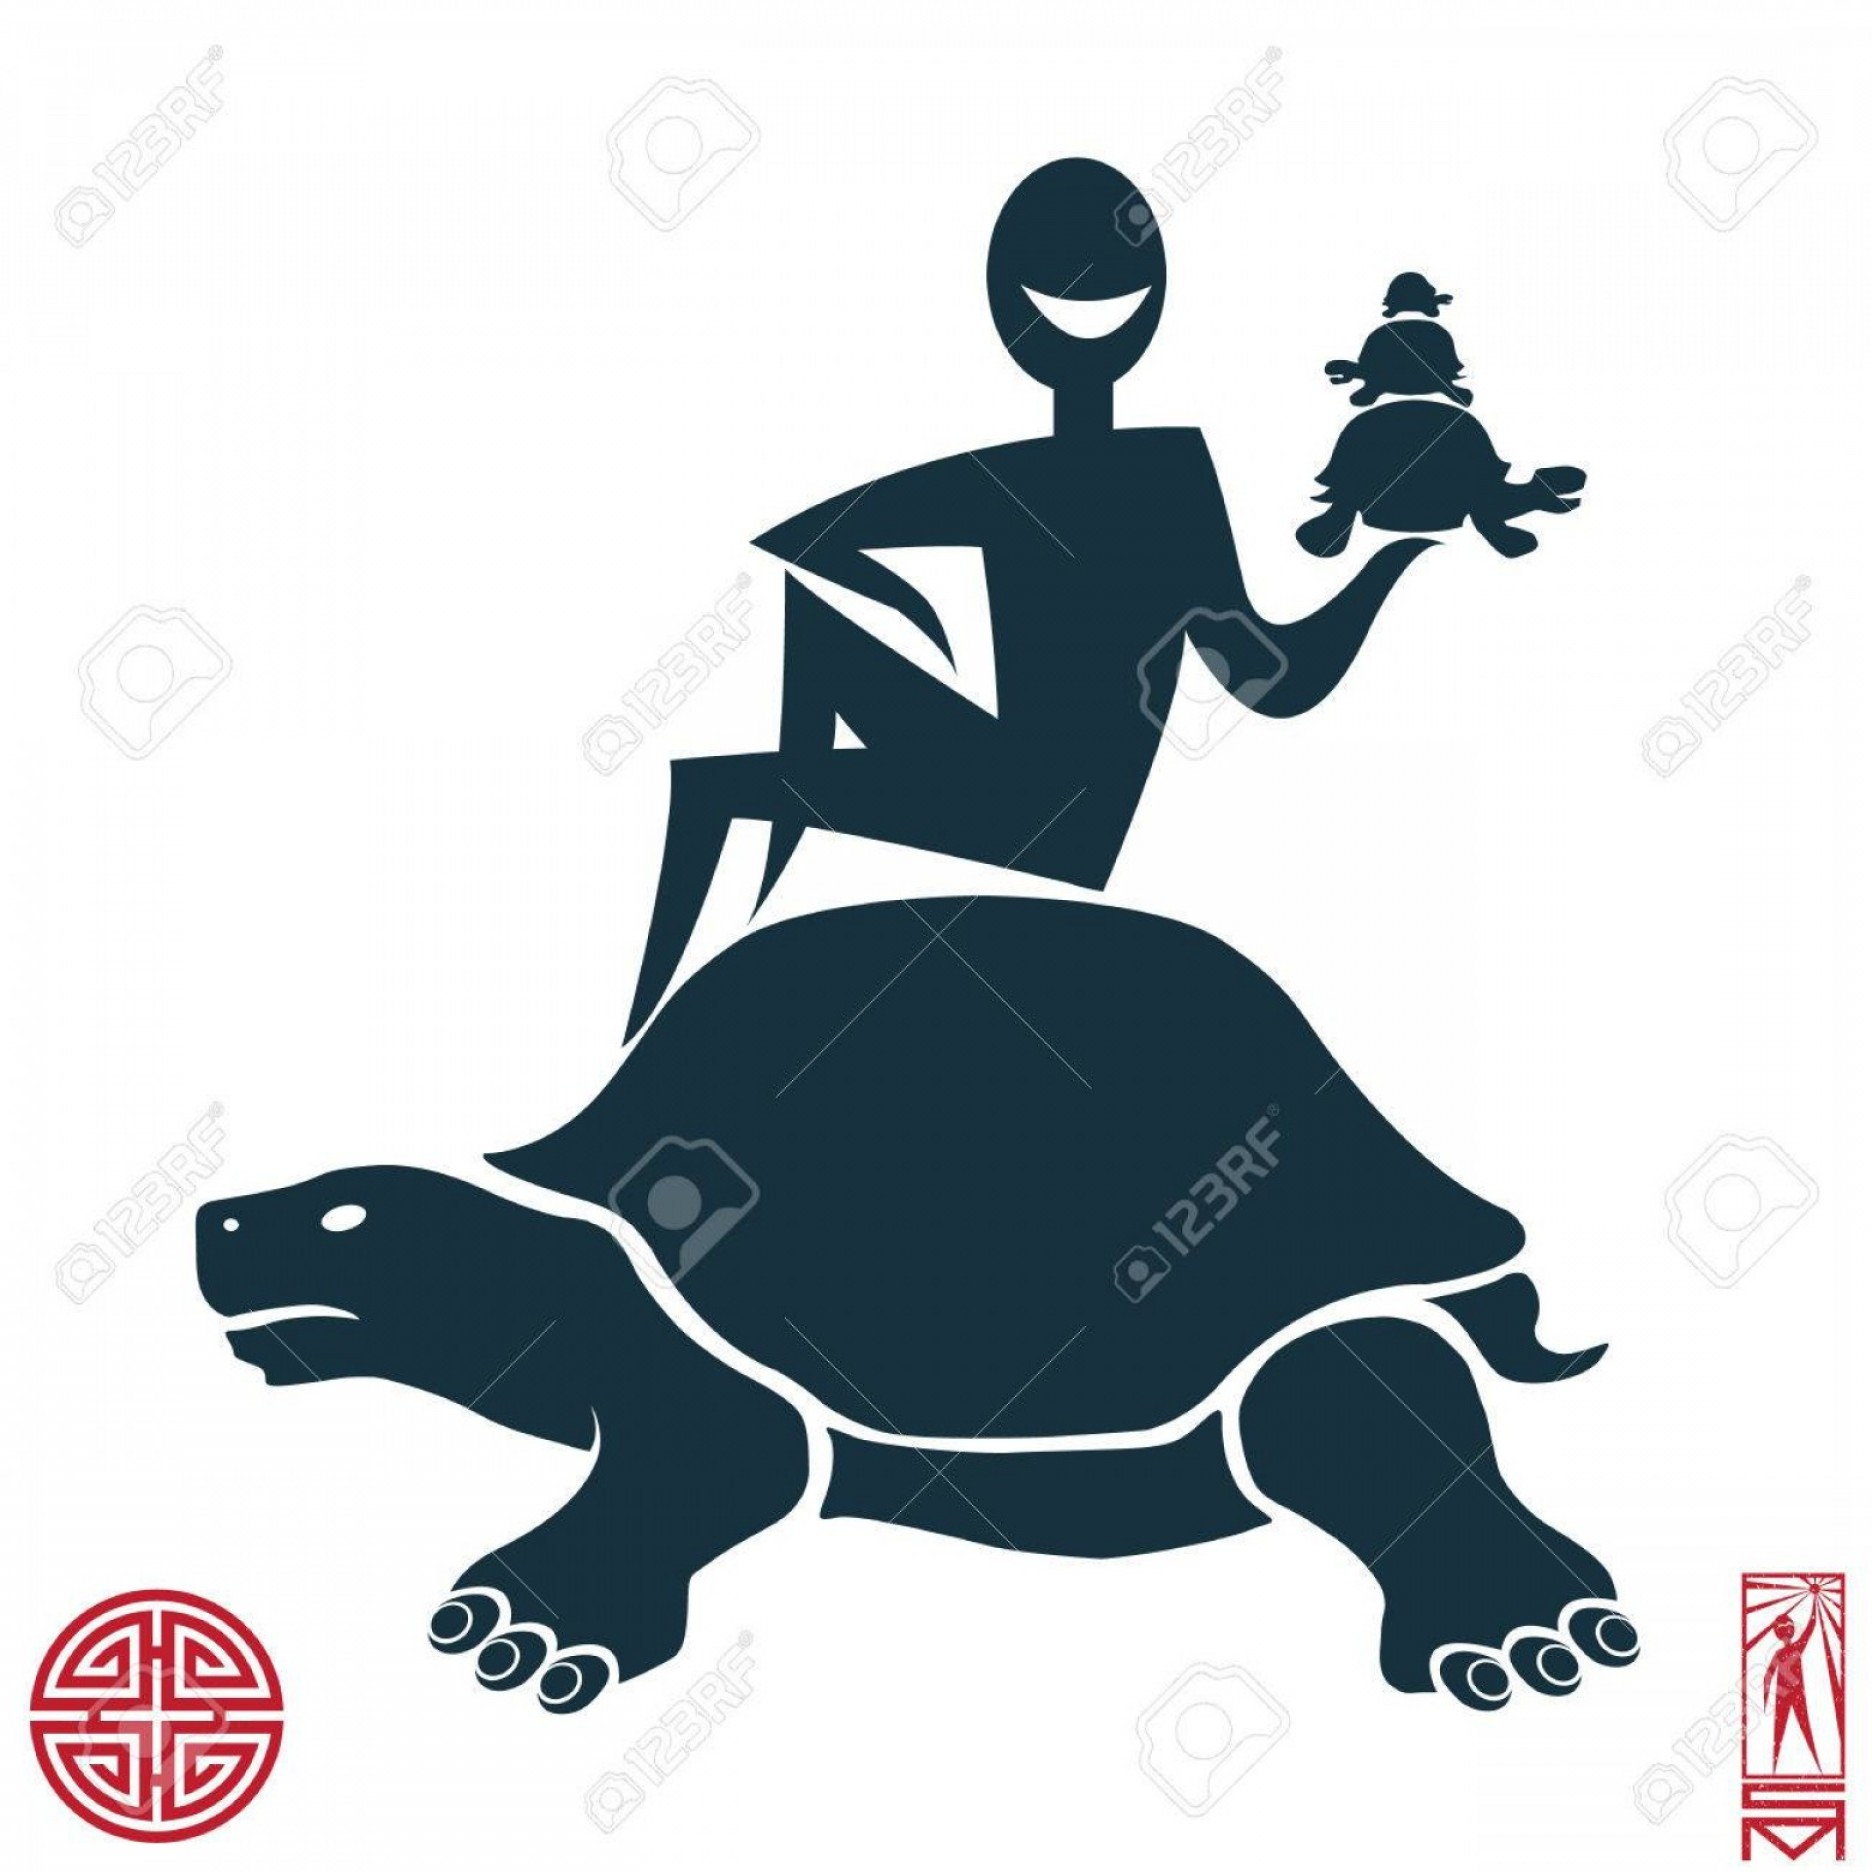 Boba Fett Silhouette Vector: Photostock Vector Man Person Basic Body Position Stick Figure Icon Silhouette Vector Sign Feng Shui China Oriental Pow